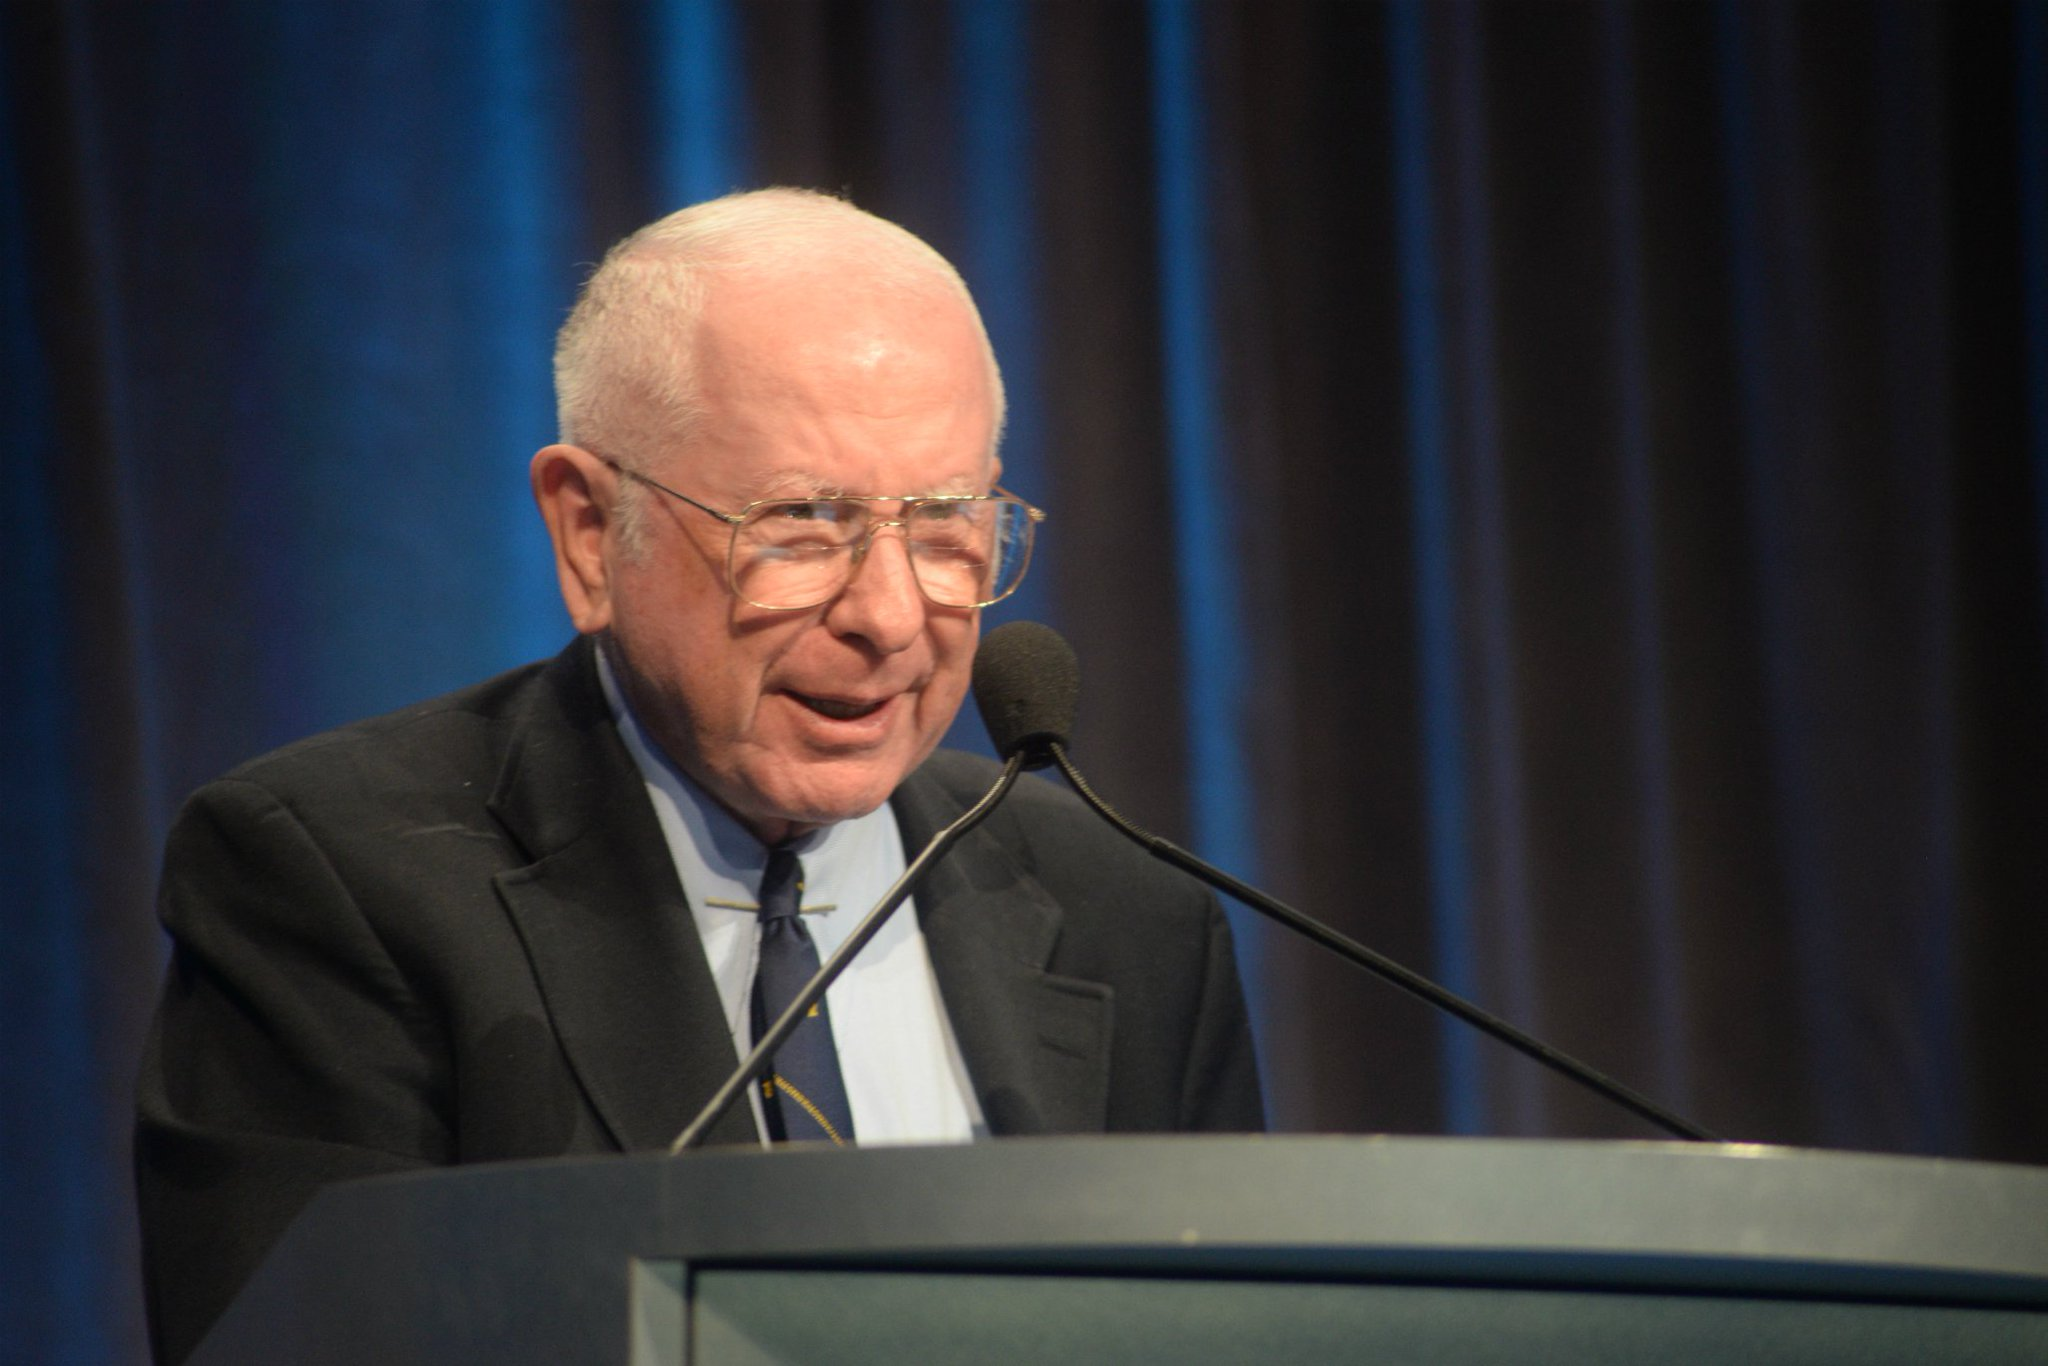 John L. Cameron,  MD from @HopkinsMedicine is the 2019 SSO Charles M. Balch, MD Distinguished Service Award. #SSO2019 https://t.co/K58luKffvC